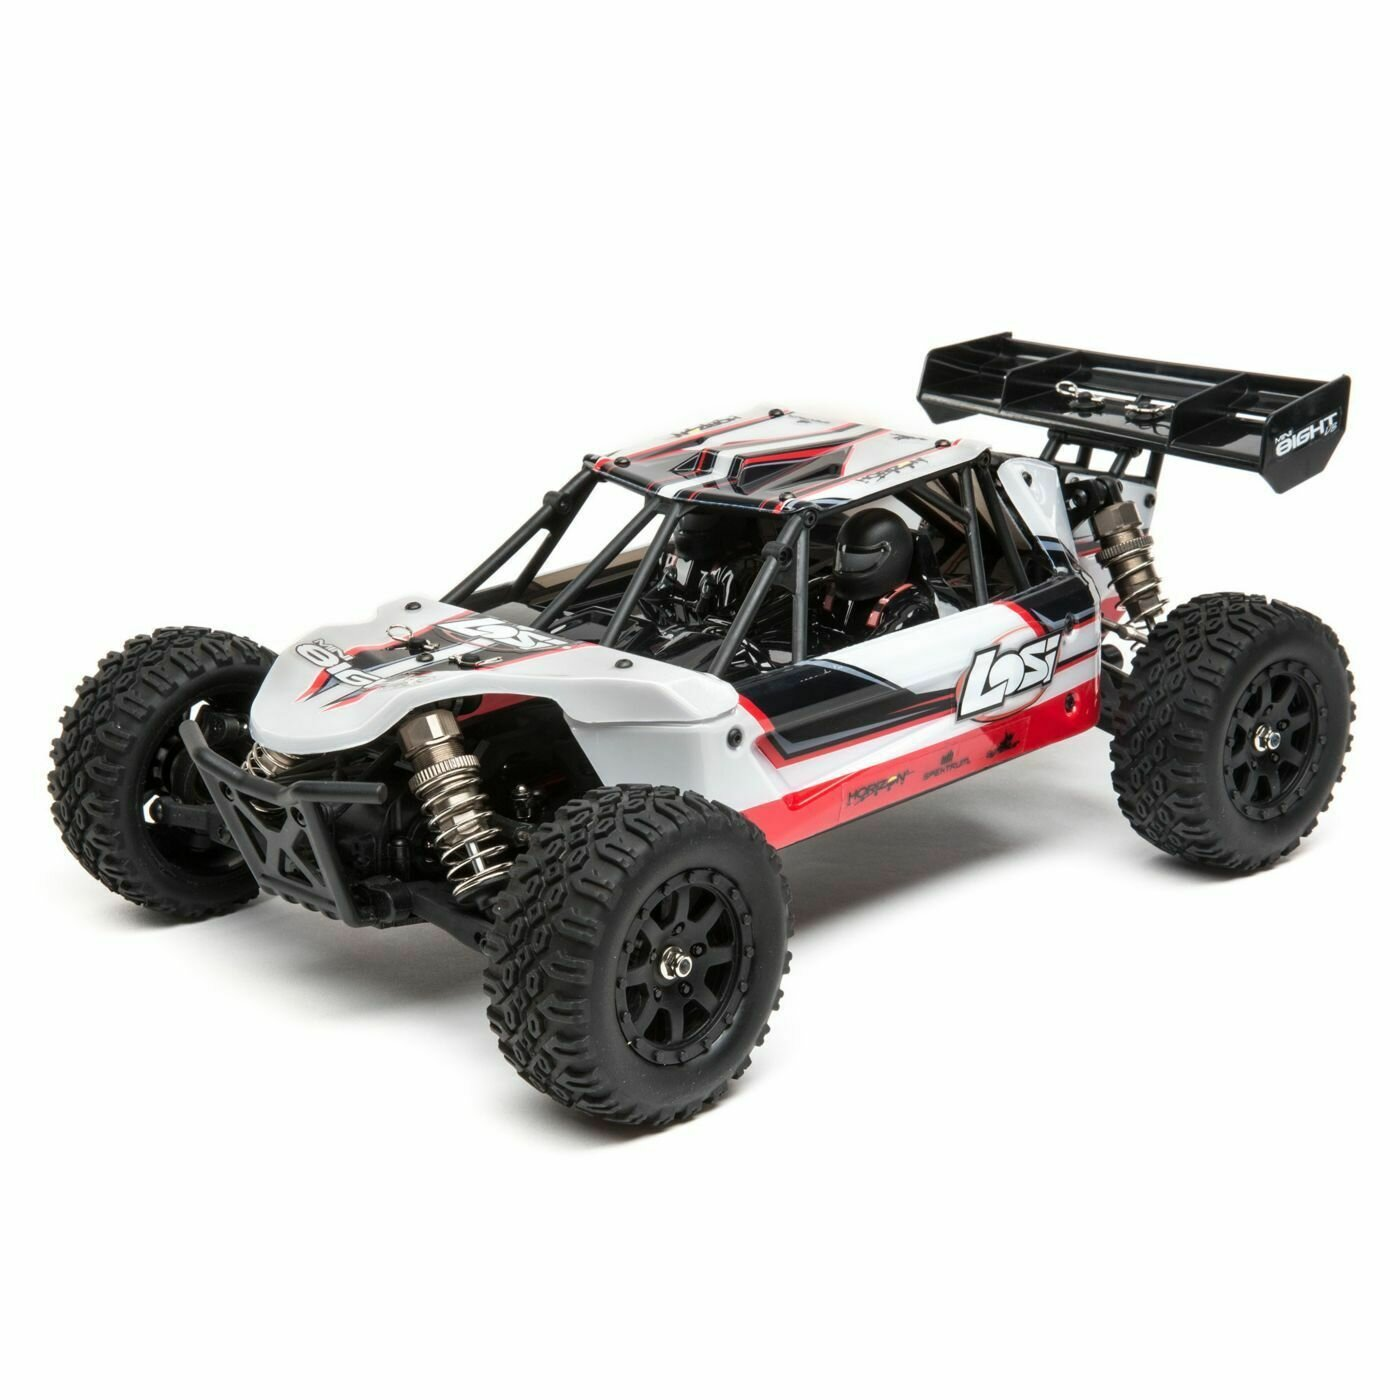 1/14 Mini 8IGHT RTR  by Losi